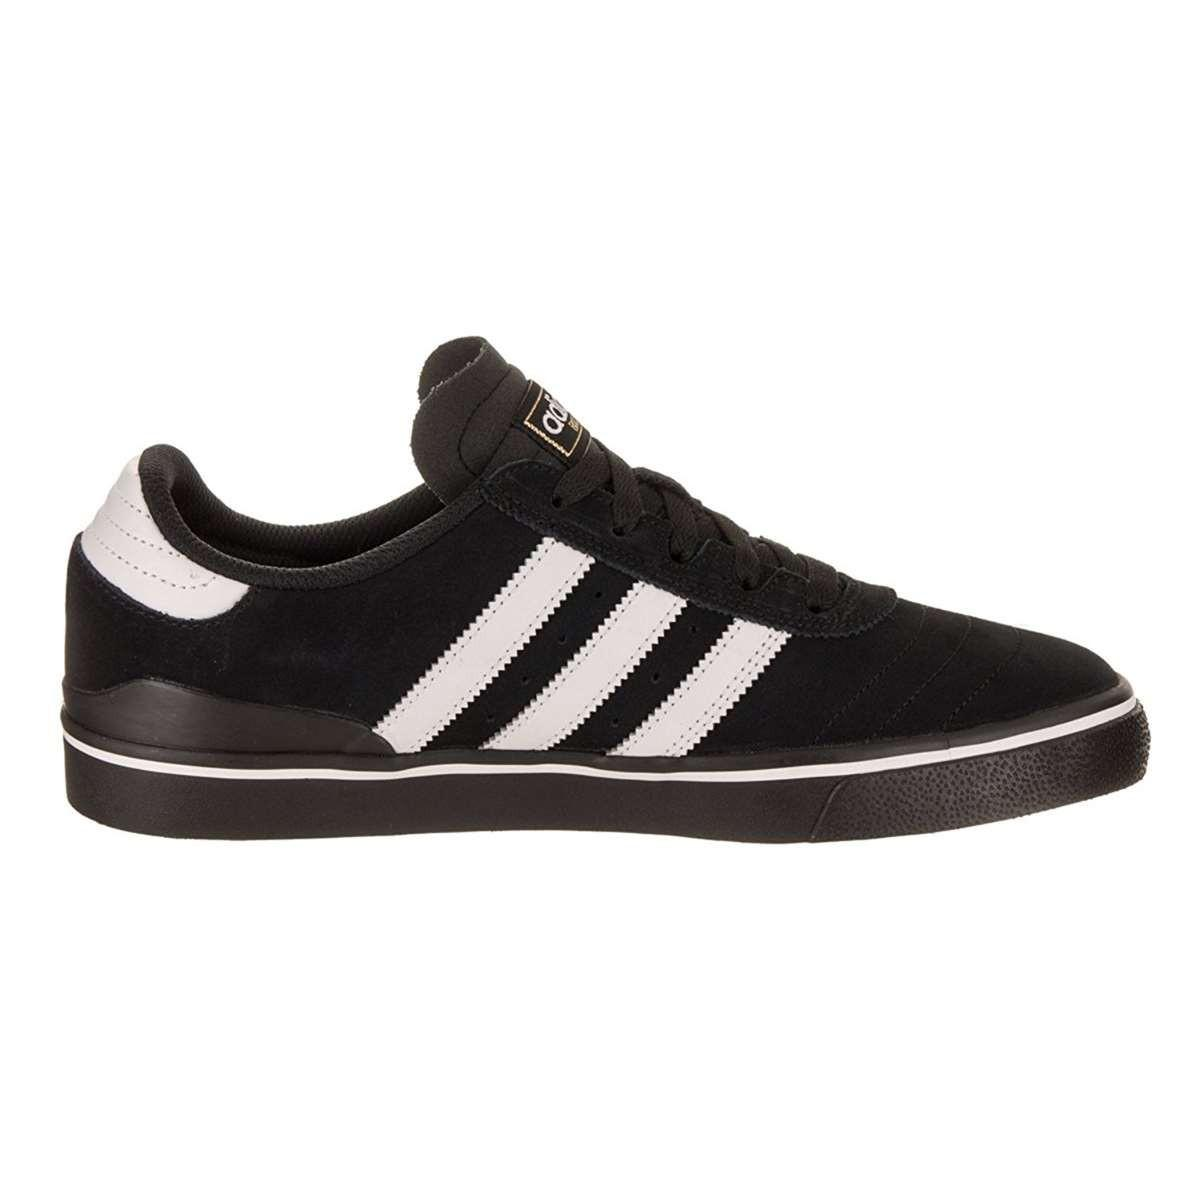 49f21a38be64d7 Lyst - Adidas Busenitz Vulc Adv Skateboarding Shoes - 8 - Black in ...